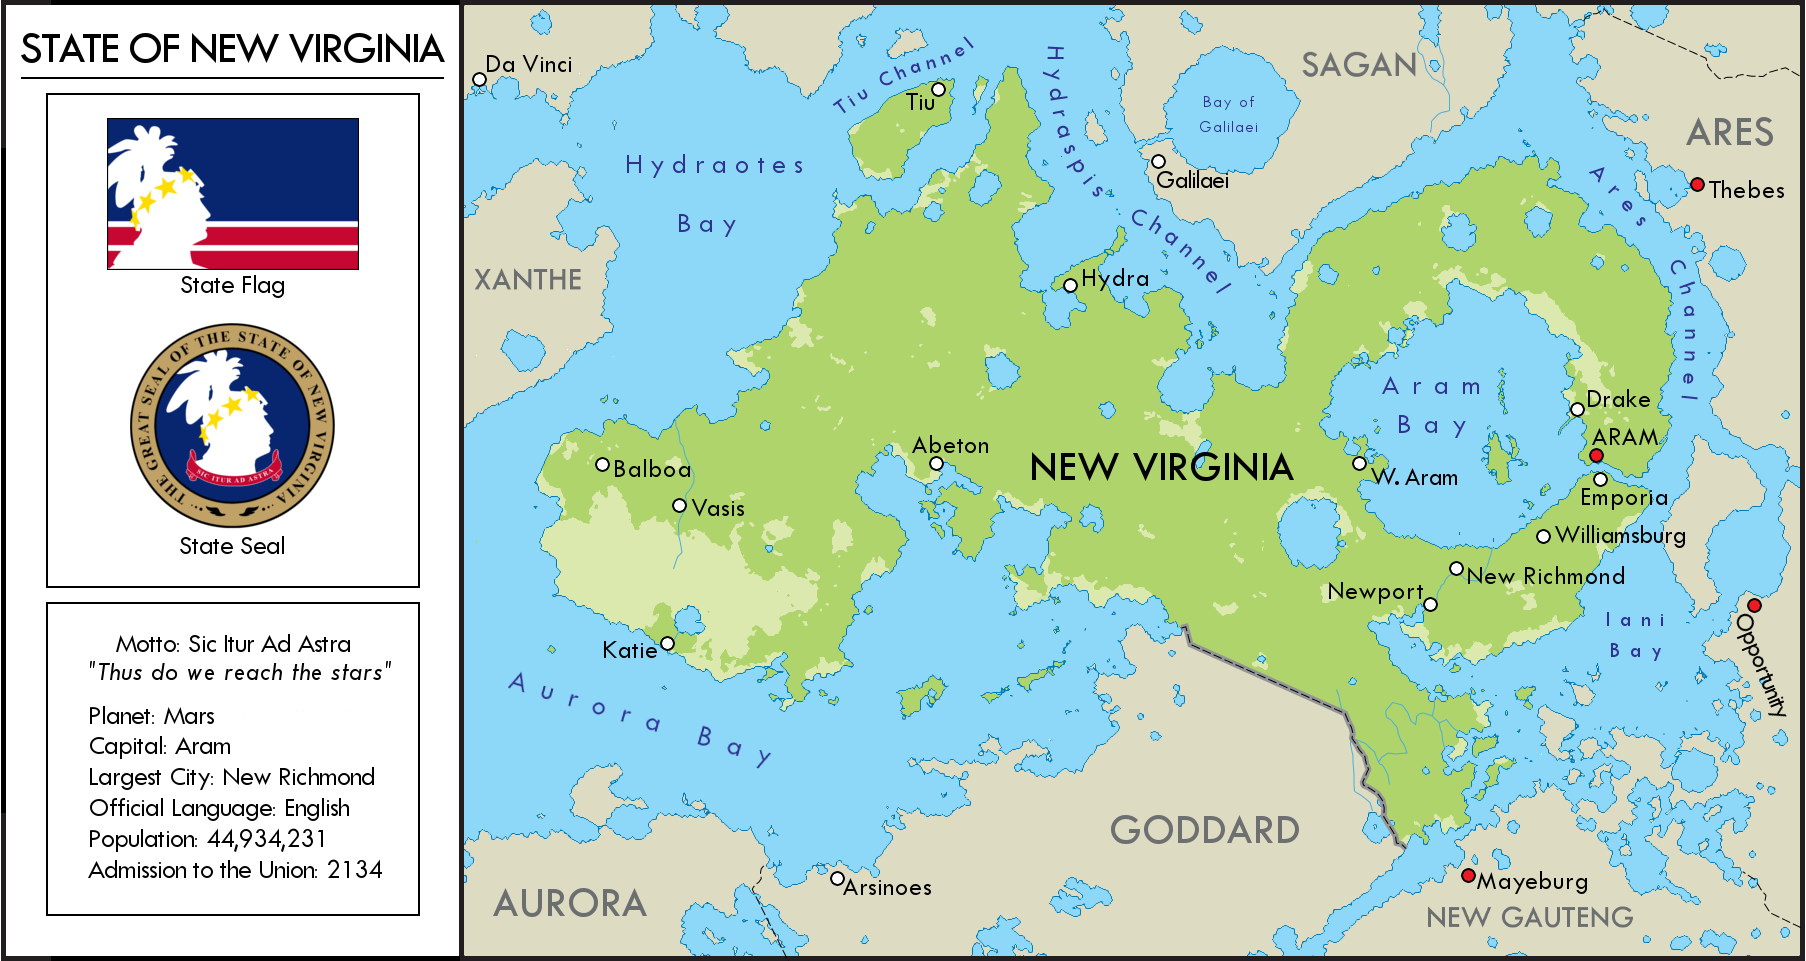 New Virginia Map by YNot1989 on DeviantArt